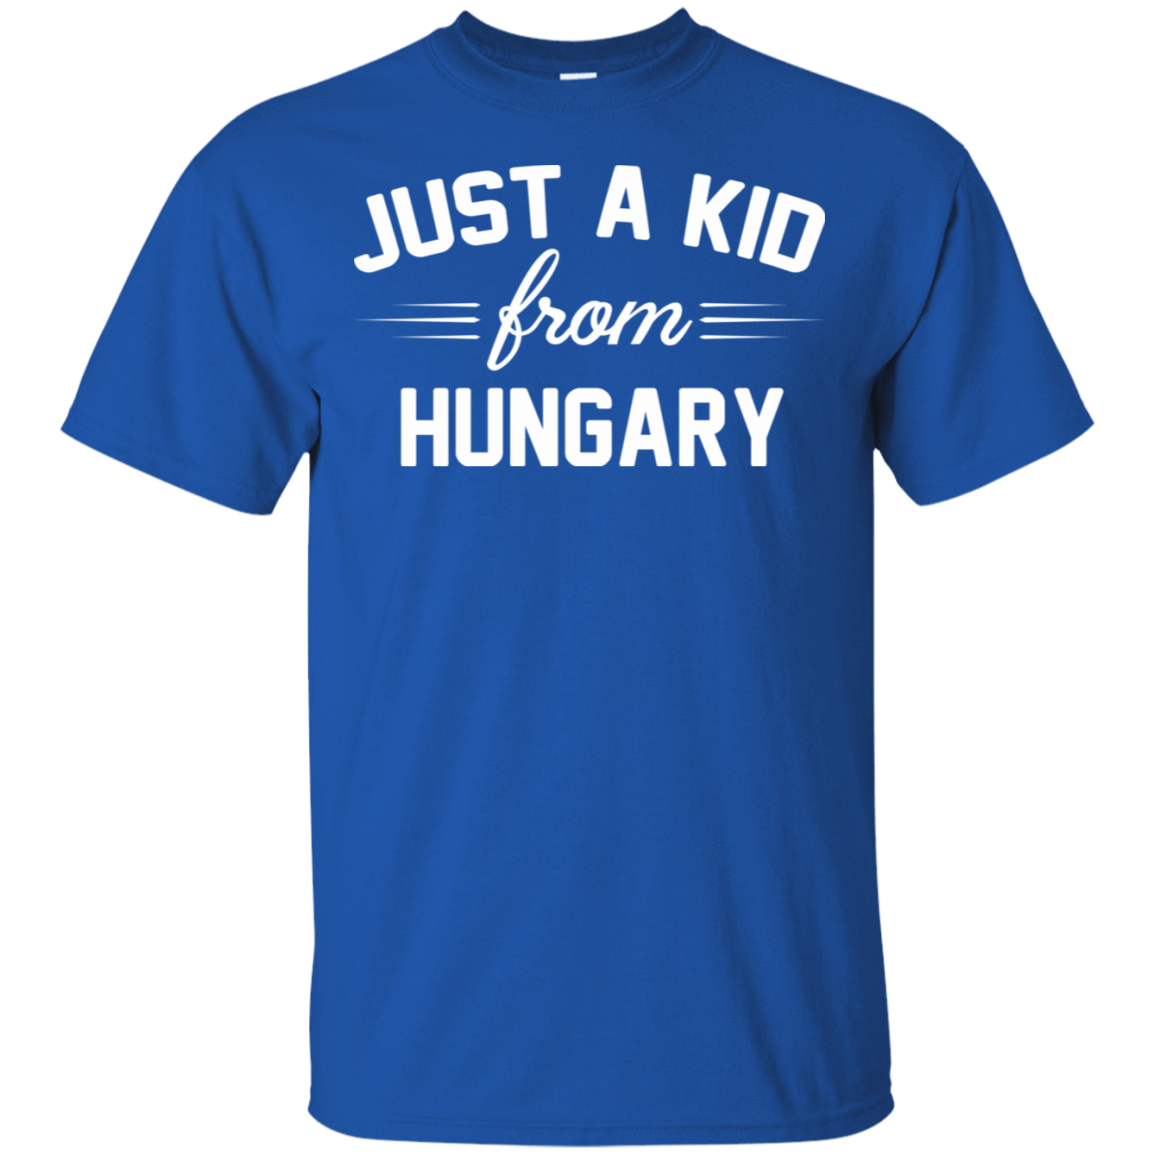 Just a Kid Store | Hungary T-Shirts, Hoodie, Tank 22-110-72091614-249 - Tee Ript